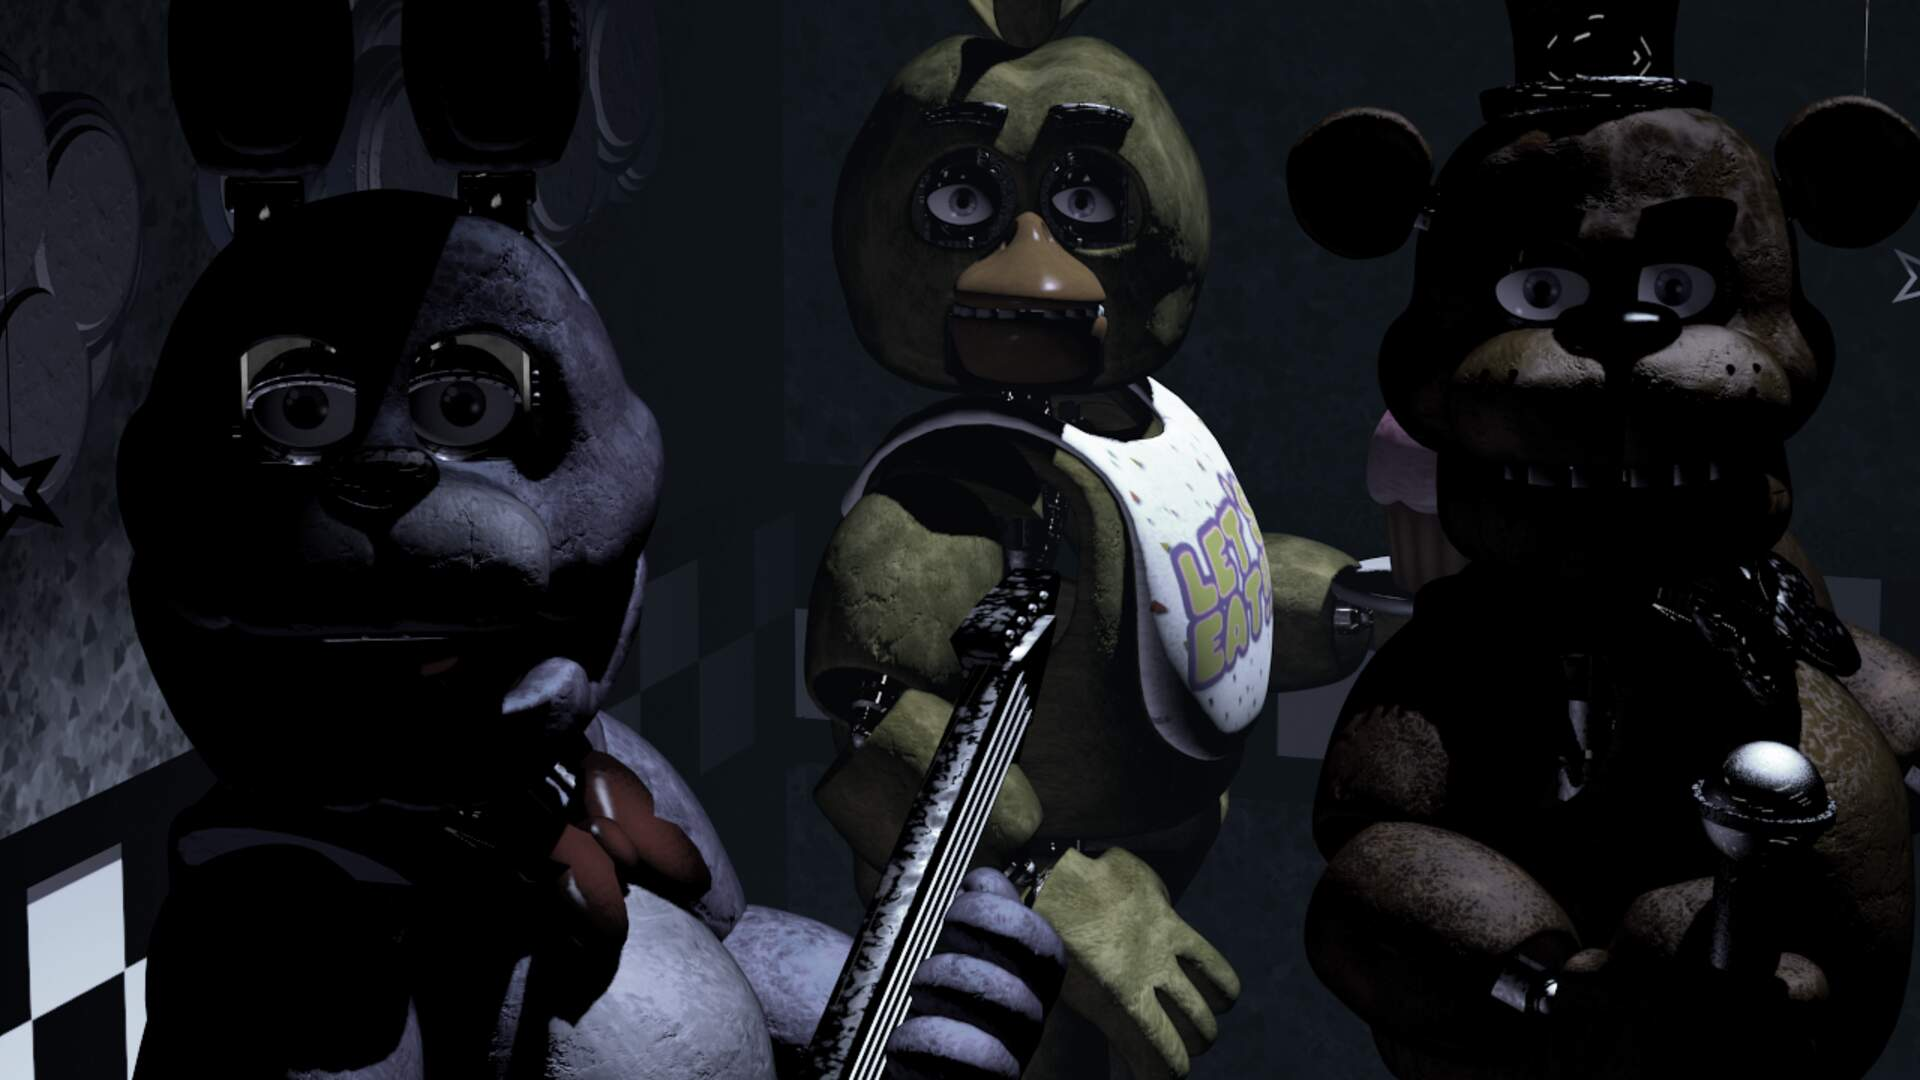 How to Improve the Five Nights at Freddy's Games